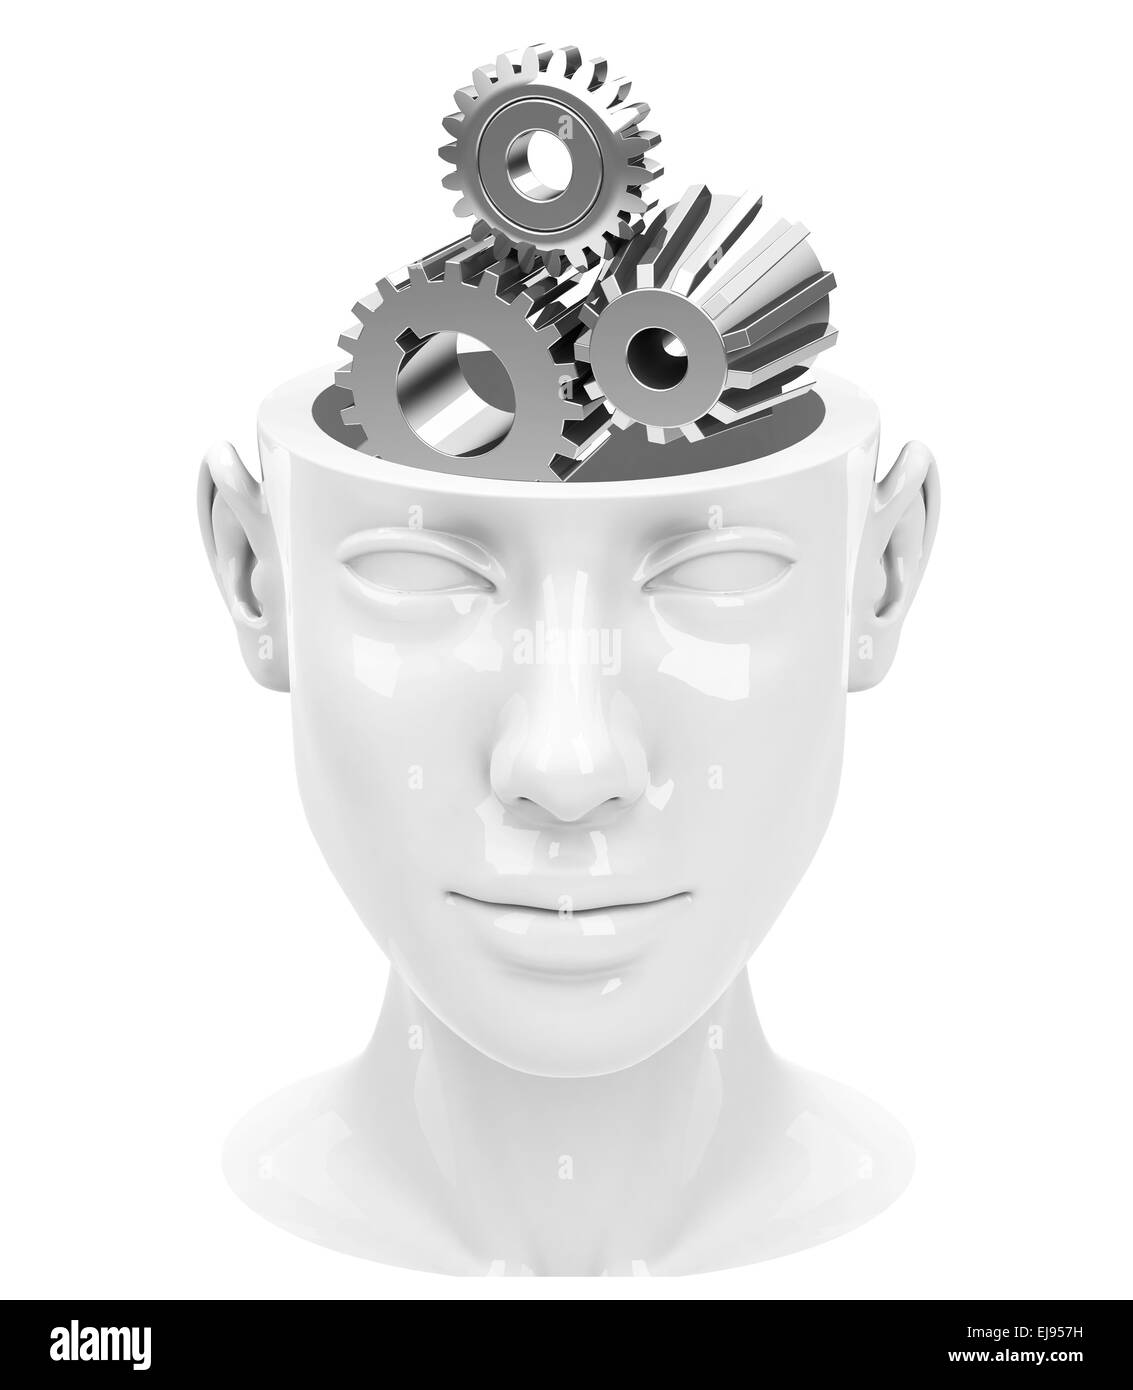 the brain gear - Stock Image